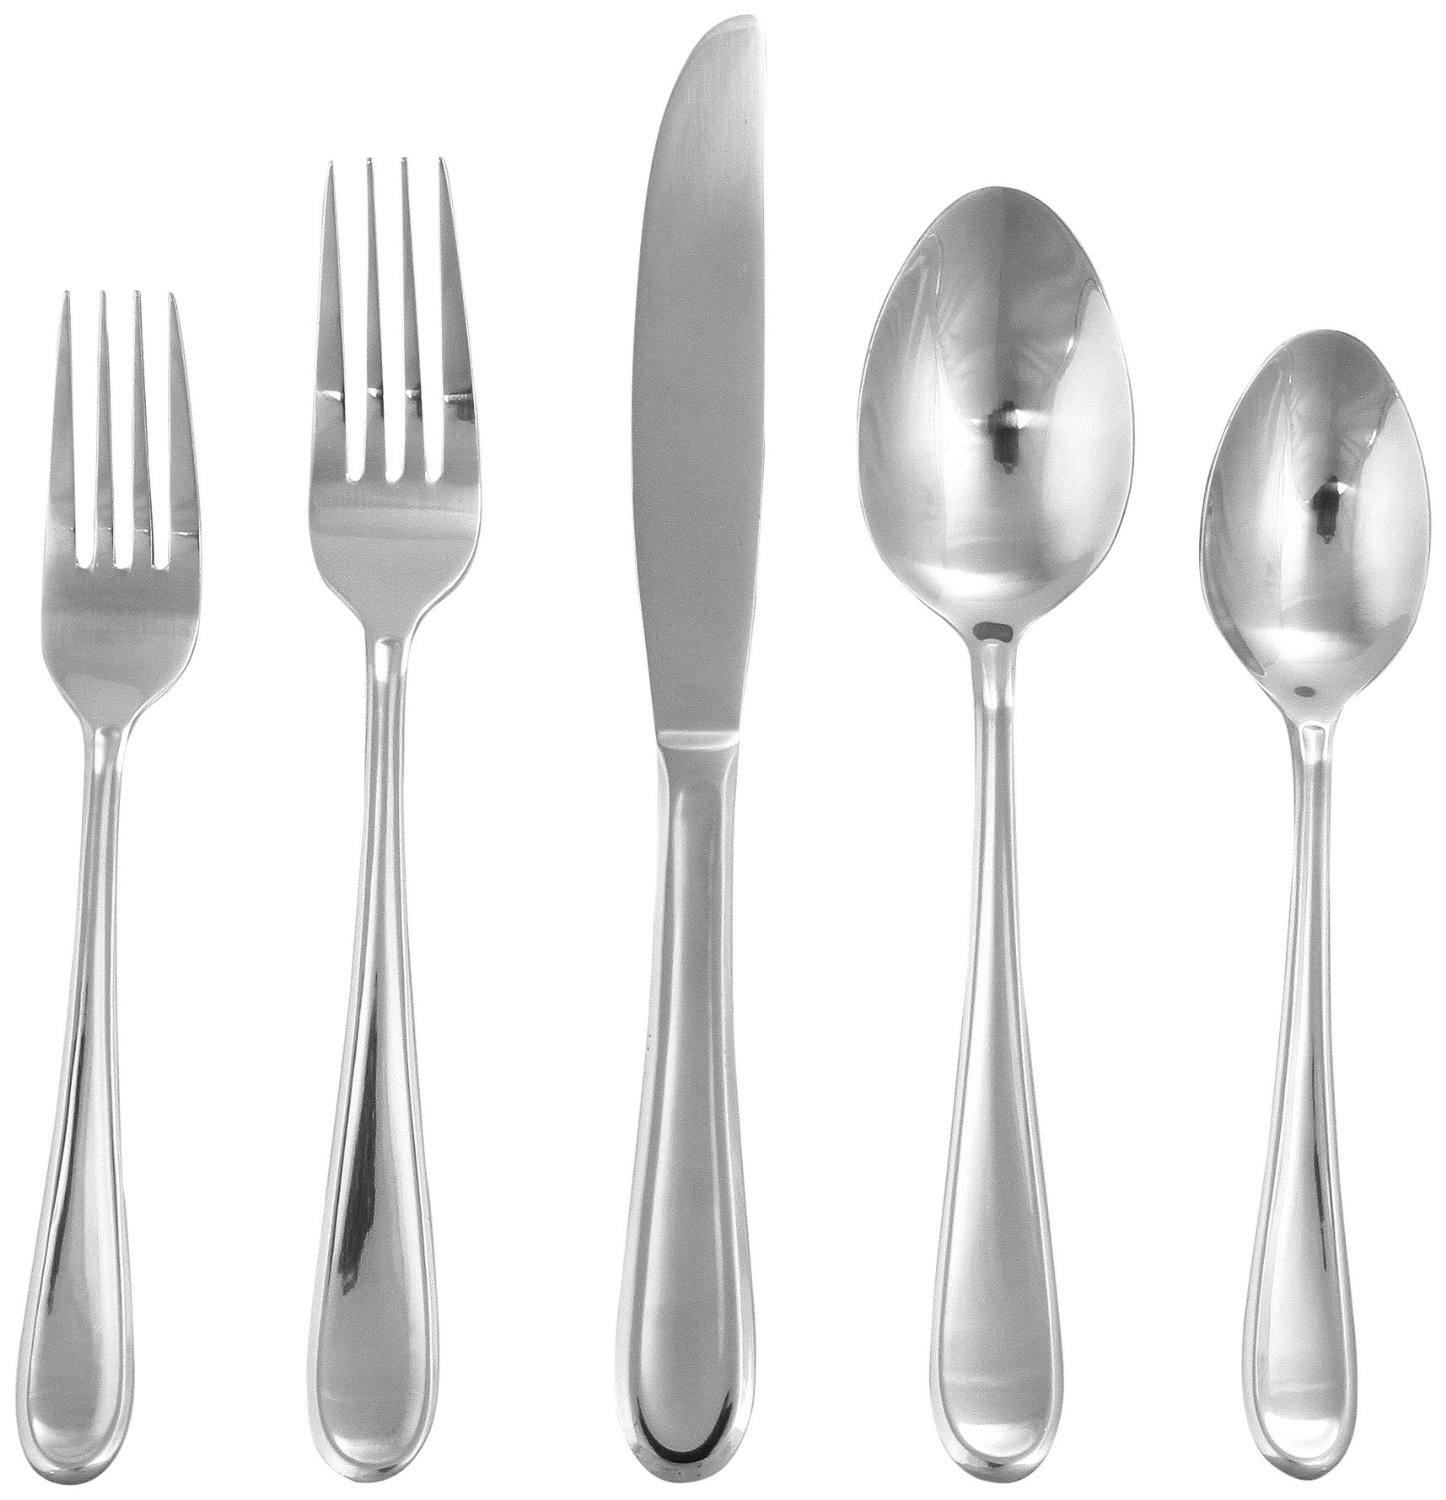 Chic hampton silversmiths for kitchen and dining sets with hampton silversmiths stainless